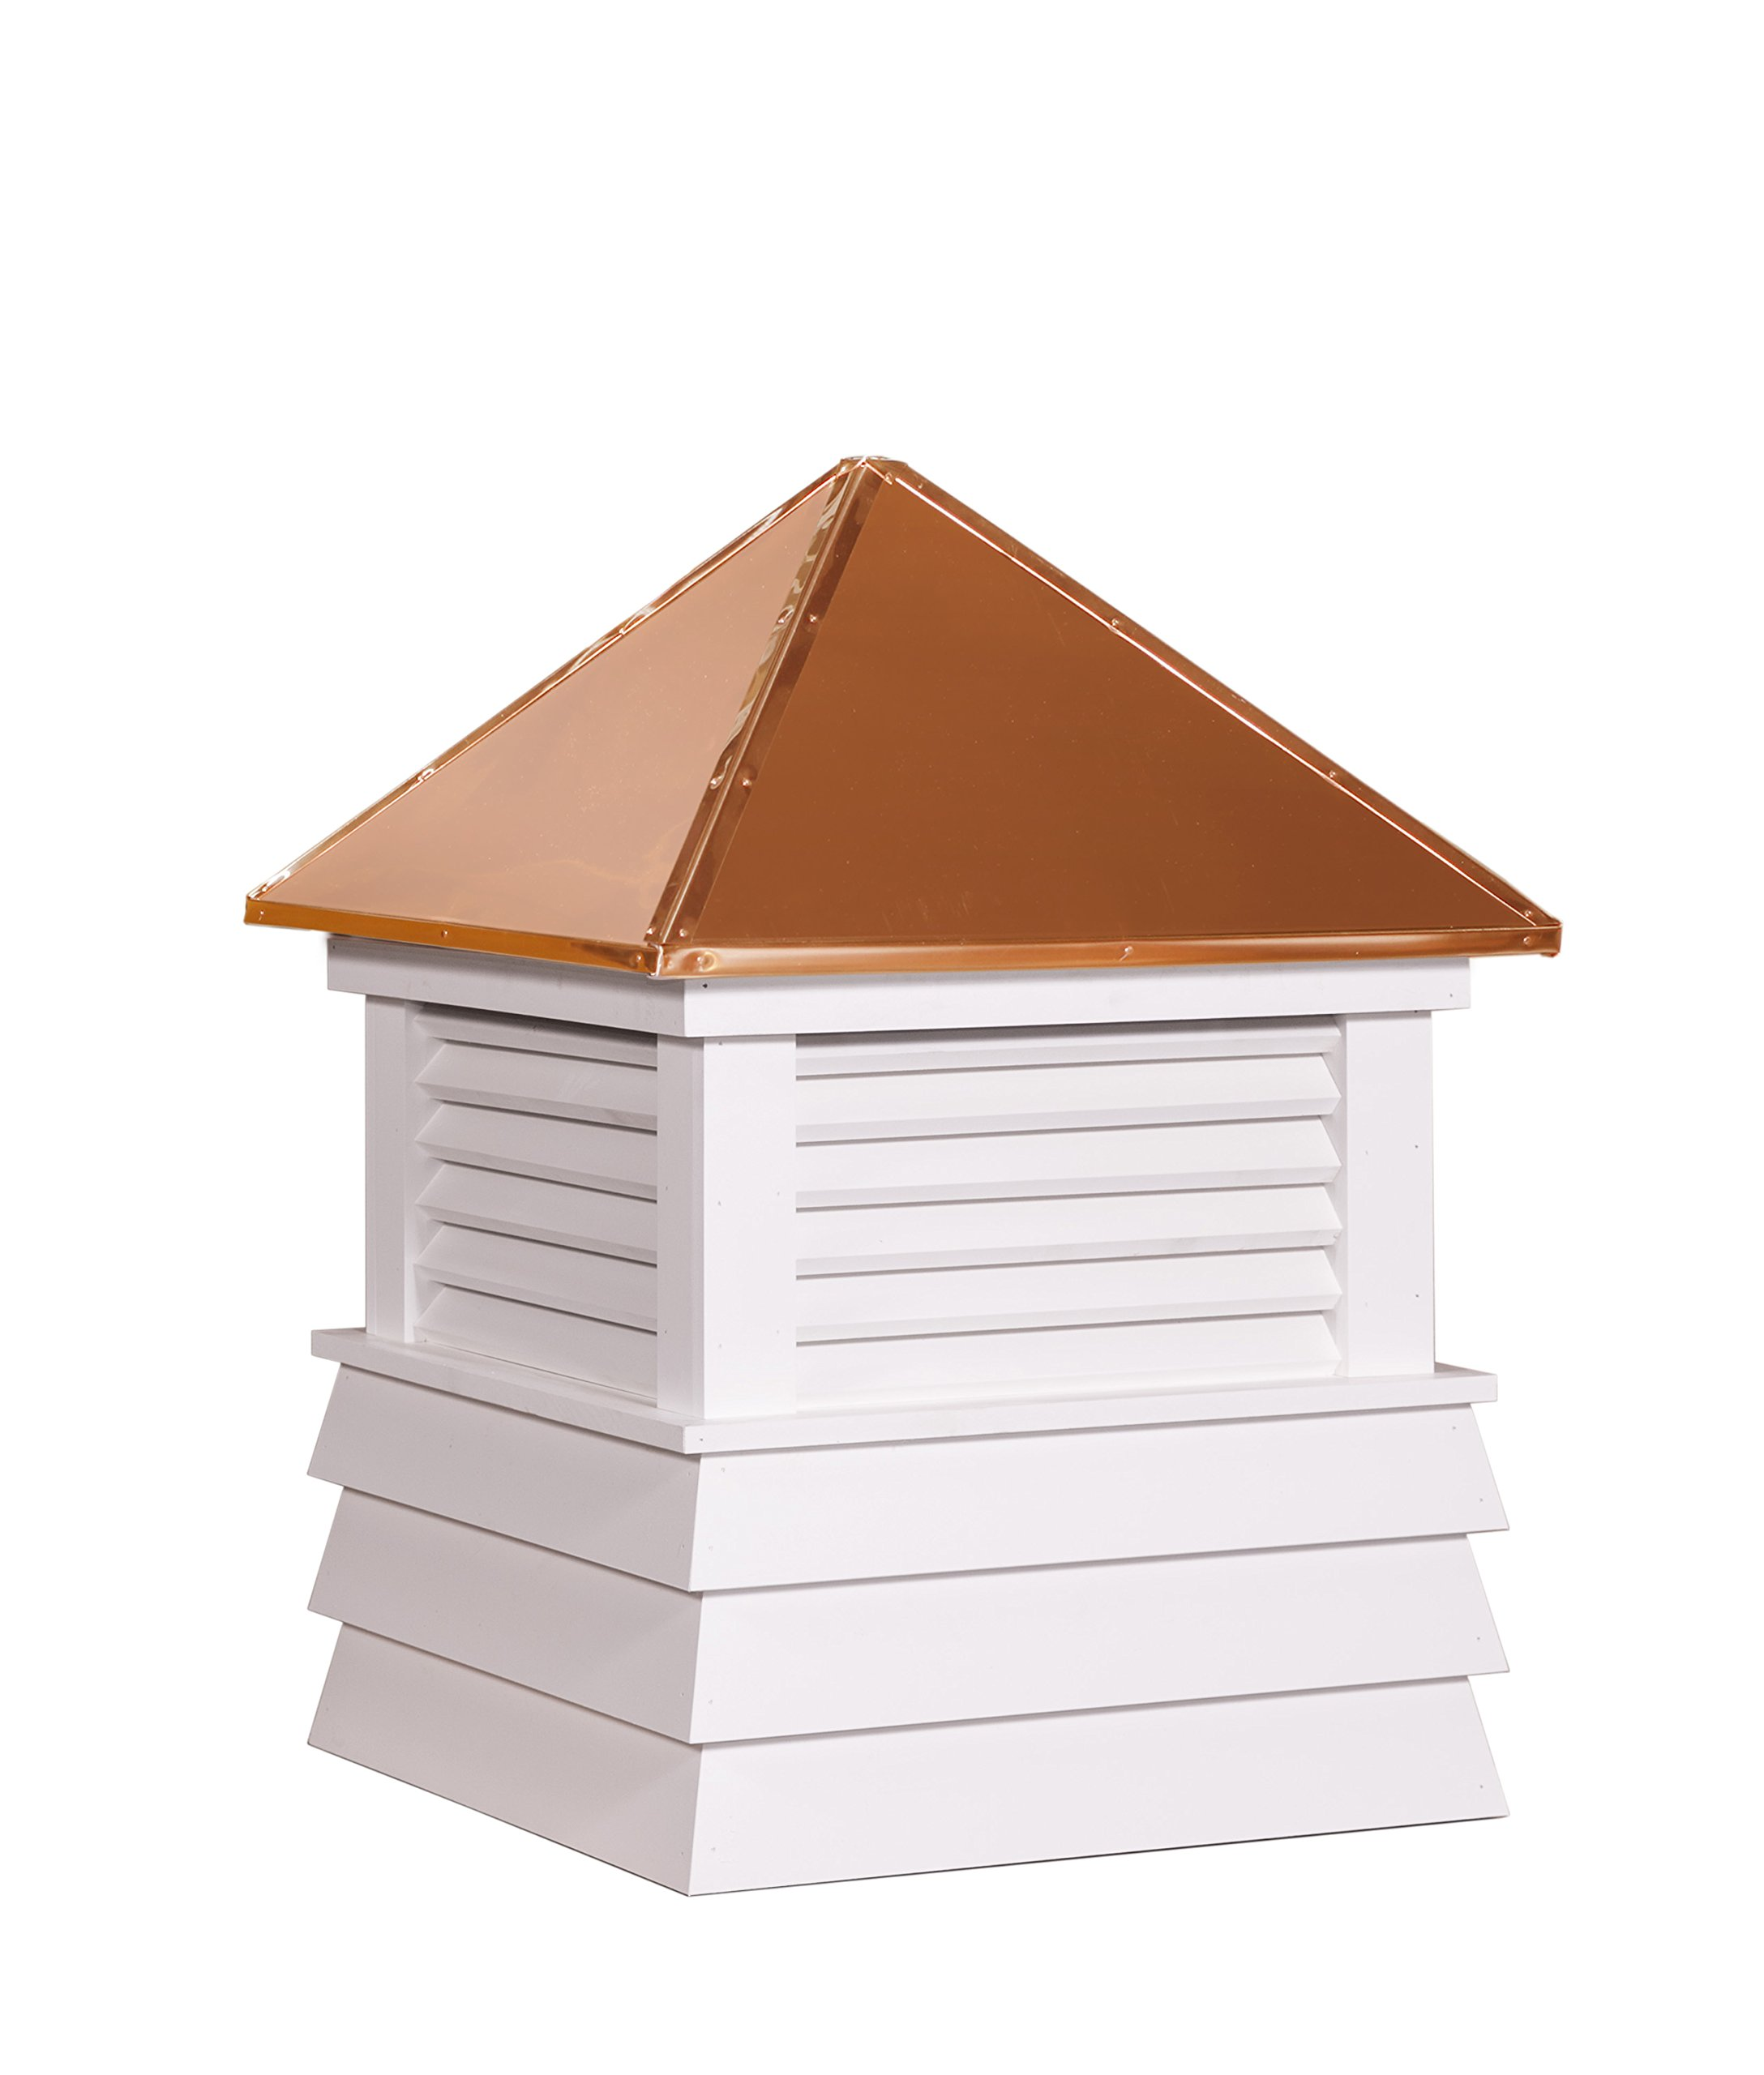 East Coast Weathervanes and Cupolas Vinyl Pembroke Cupola (vinyl, 25 in square x 34 in tall)